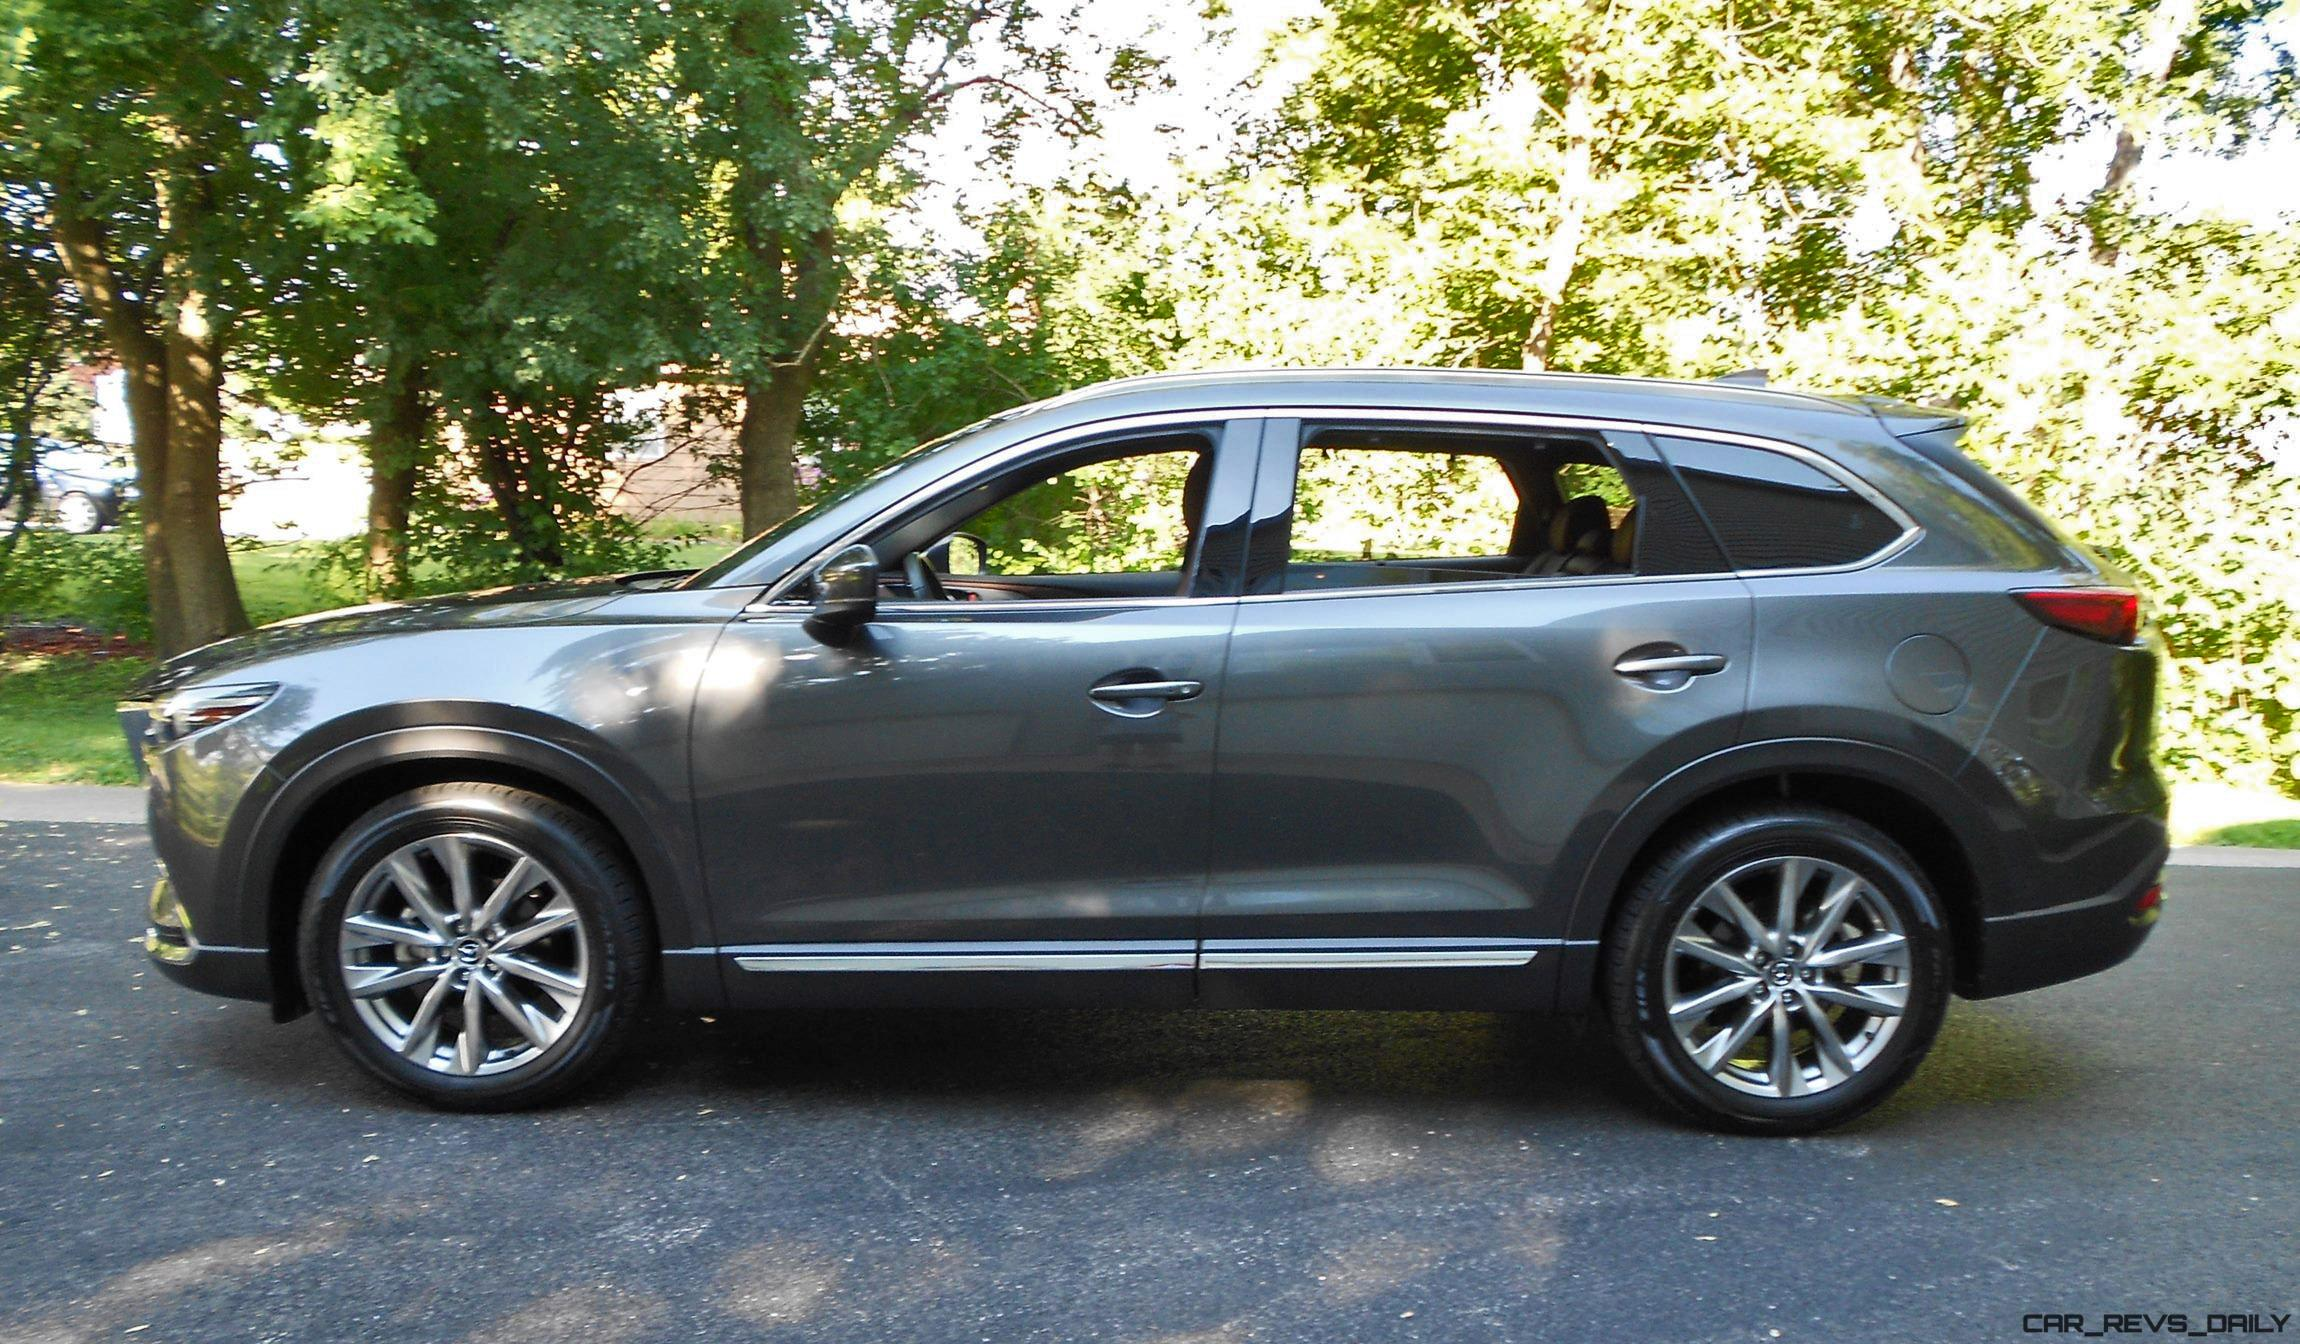 2016 mazda cx 9 signature awd road test review by ken hawkeye glassman. Black Bedroom Furniture Sets. Home Design Ideas